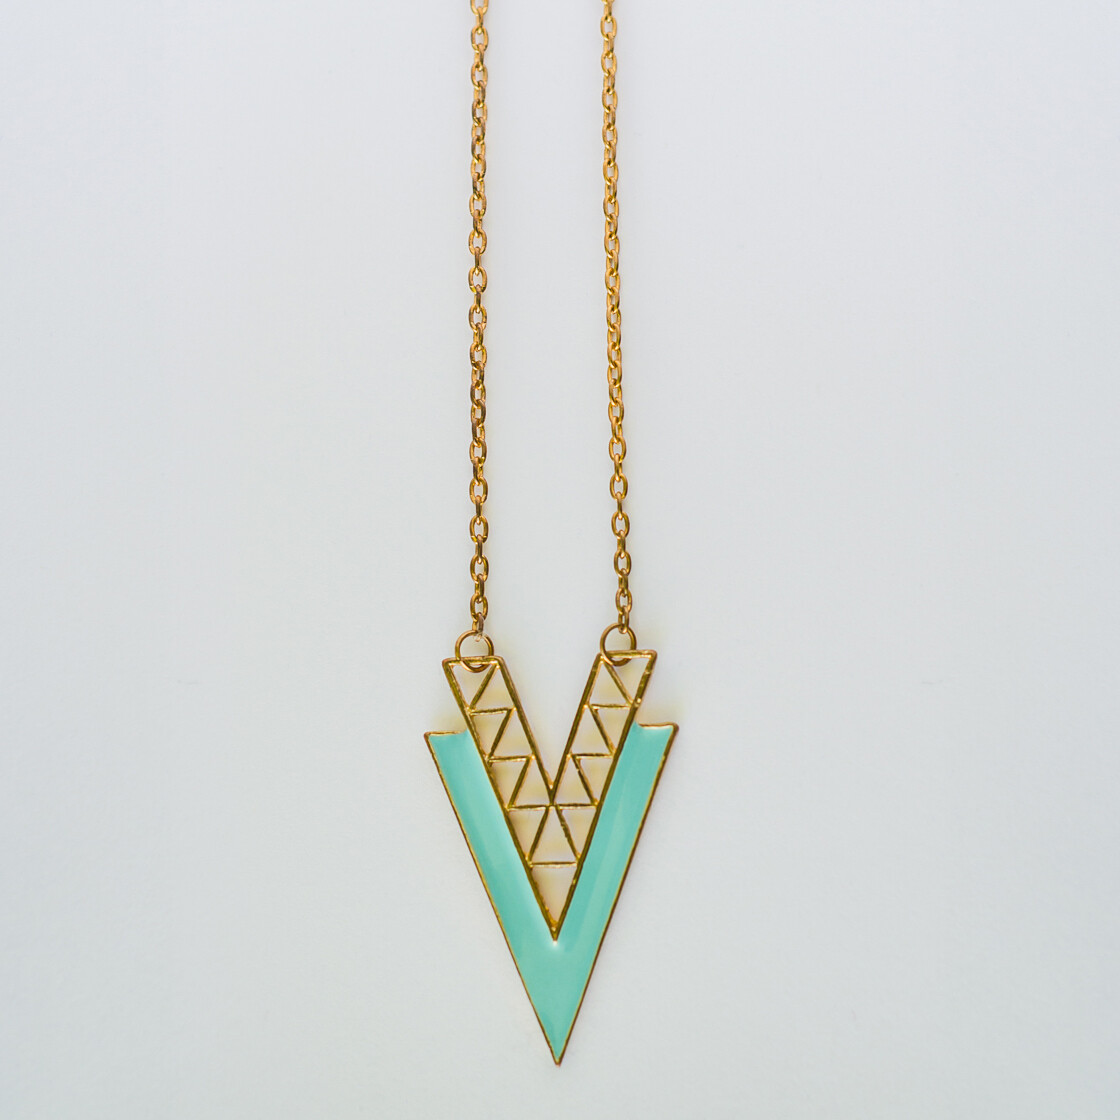 Turquose Triangle Necklace - BLACKDOLL ACCESSORIES